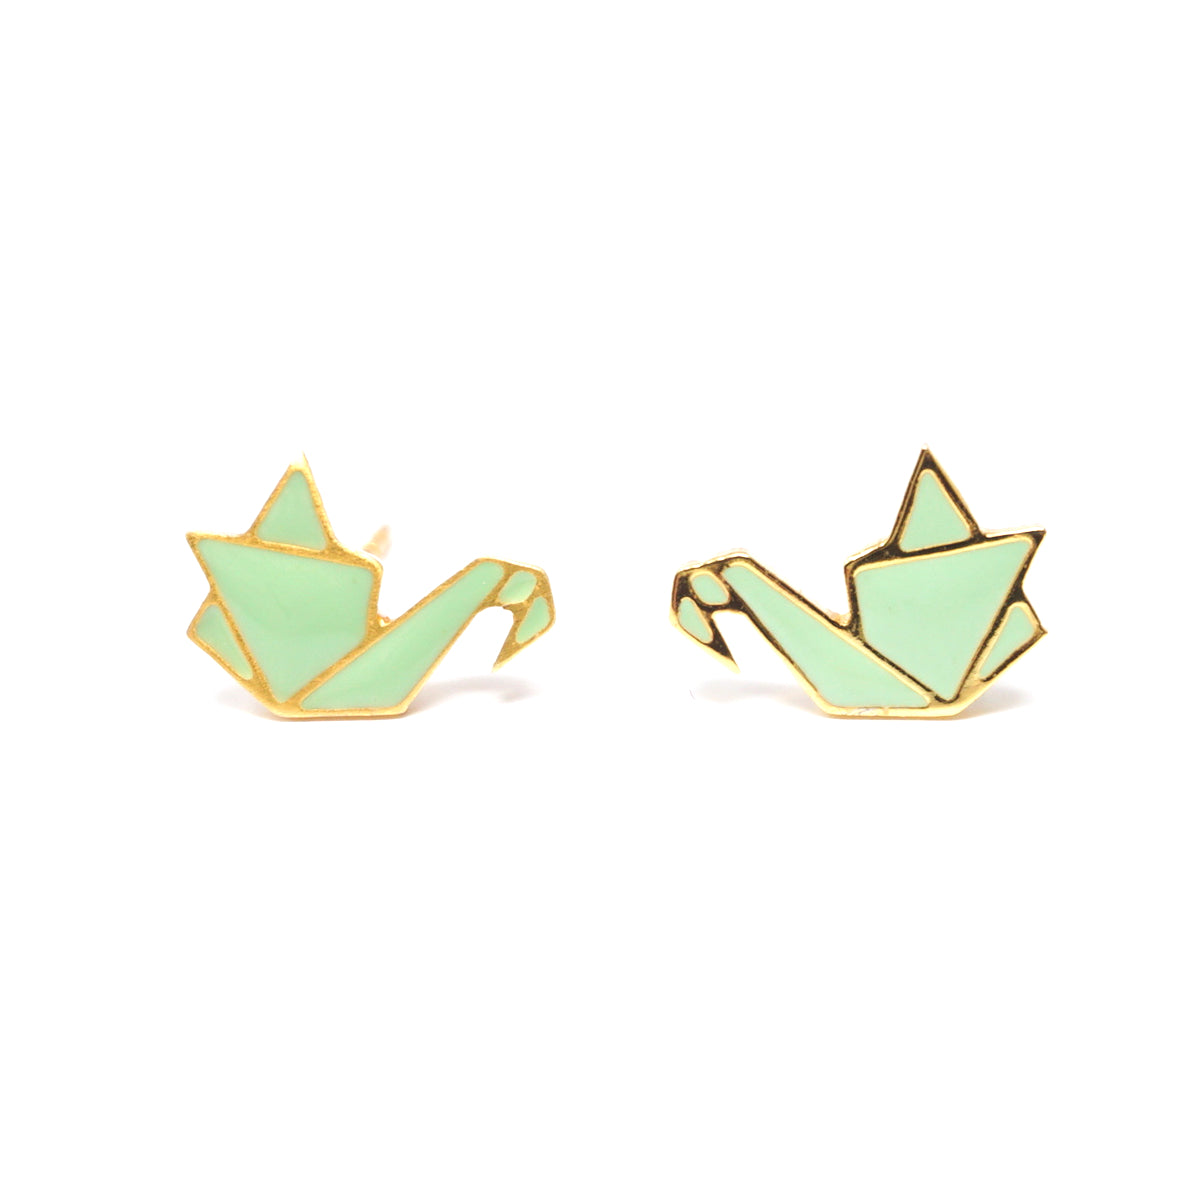 Origami Crane Green Enamel Stud Earrings